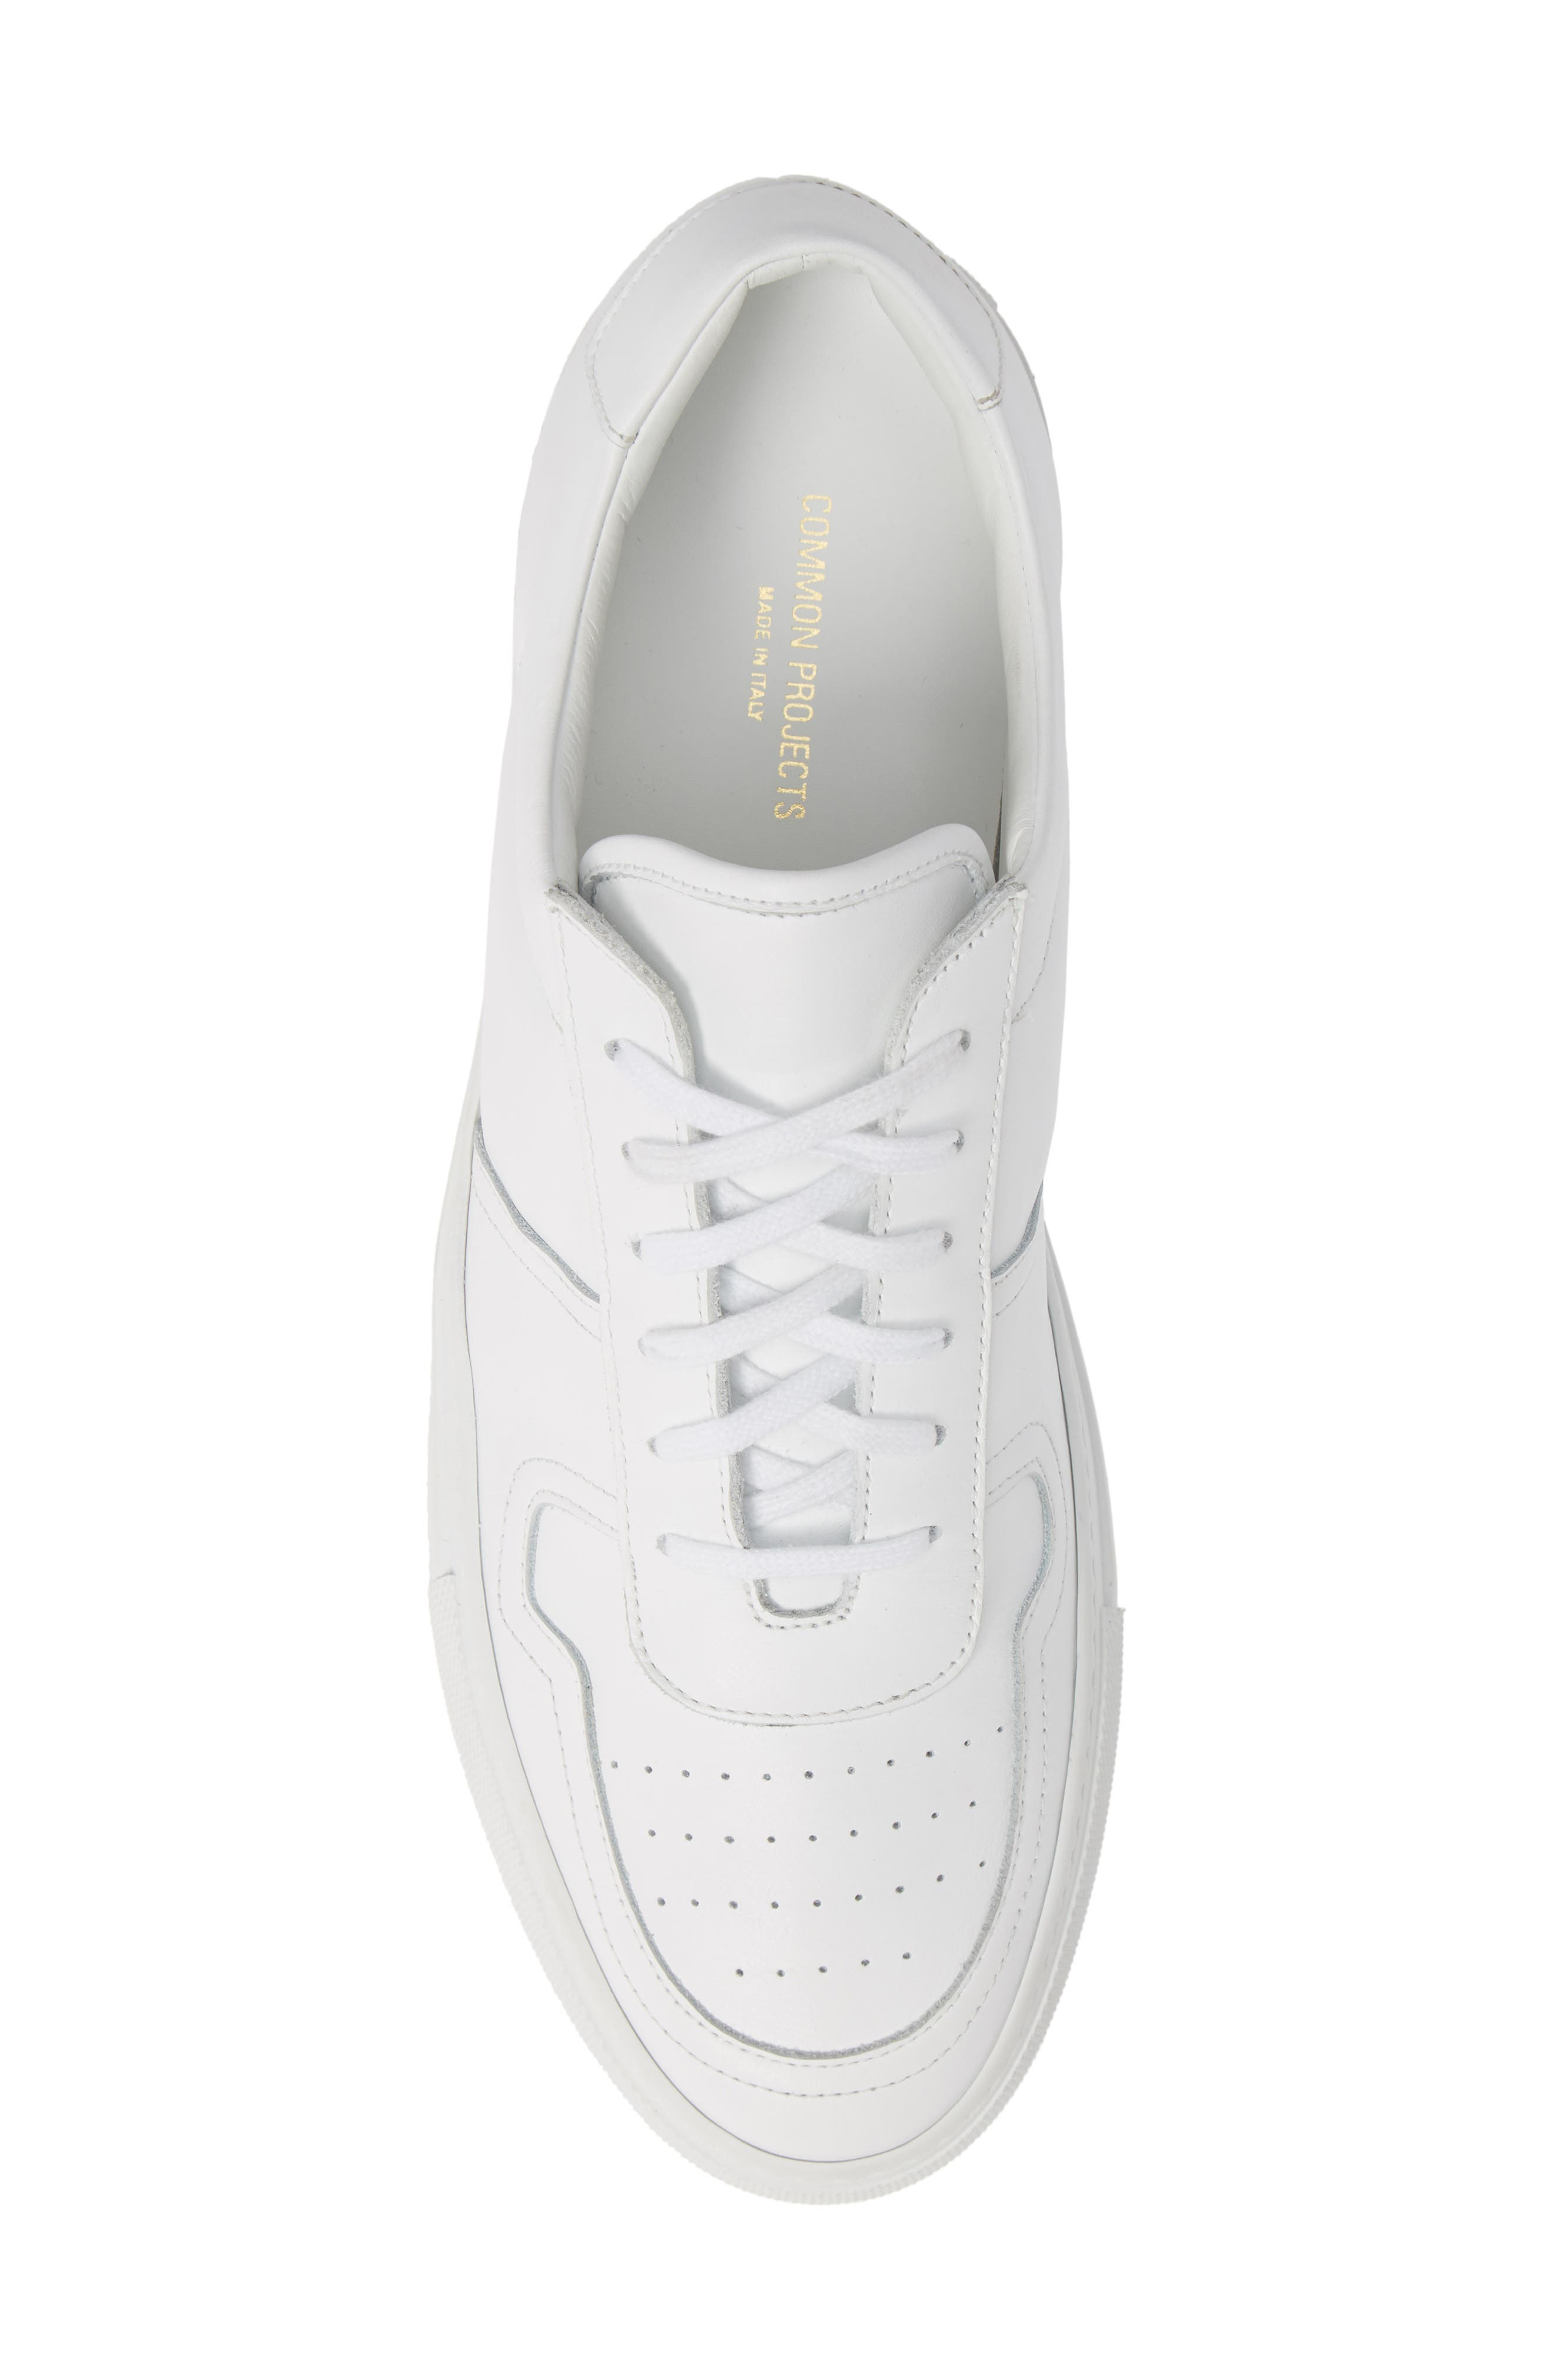 COMMON PROJECTS,                             Bball Low Top Sneaker,                             Alternate thumbnail 5, color,                             WHITE